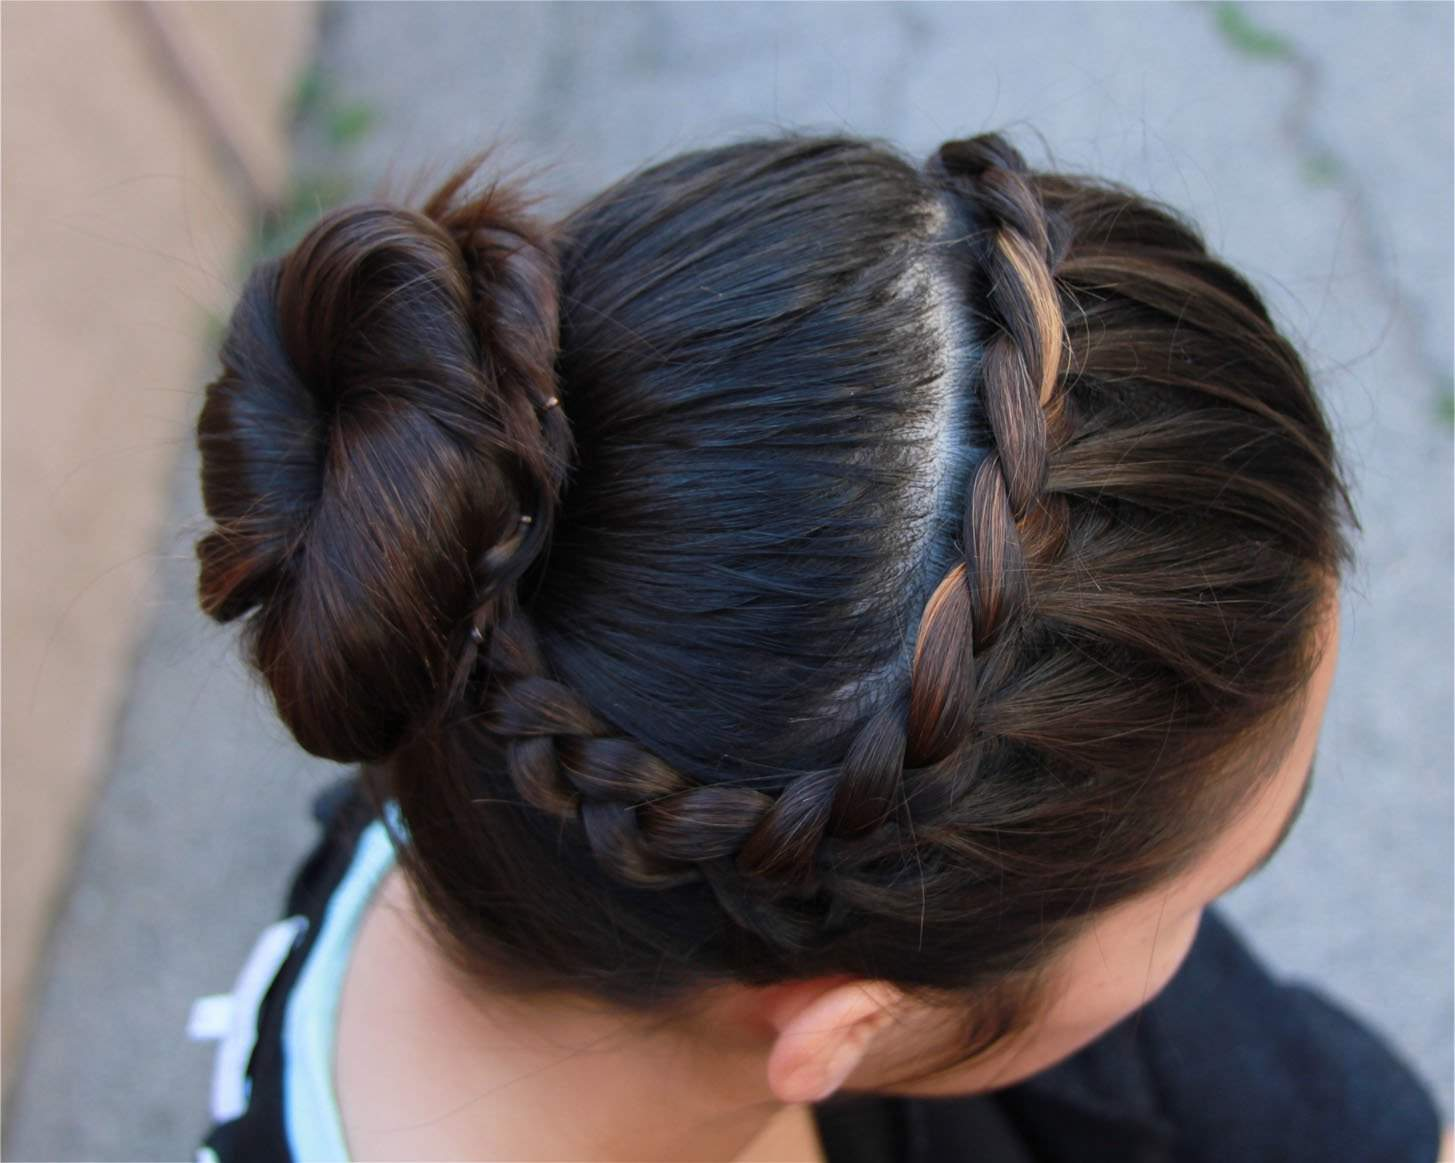 Cute Braided Bun Hairstyles For Short Hair : Easy buns and braided hairstyles unveiled fashion